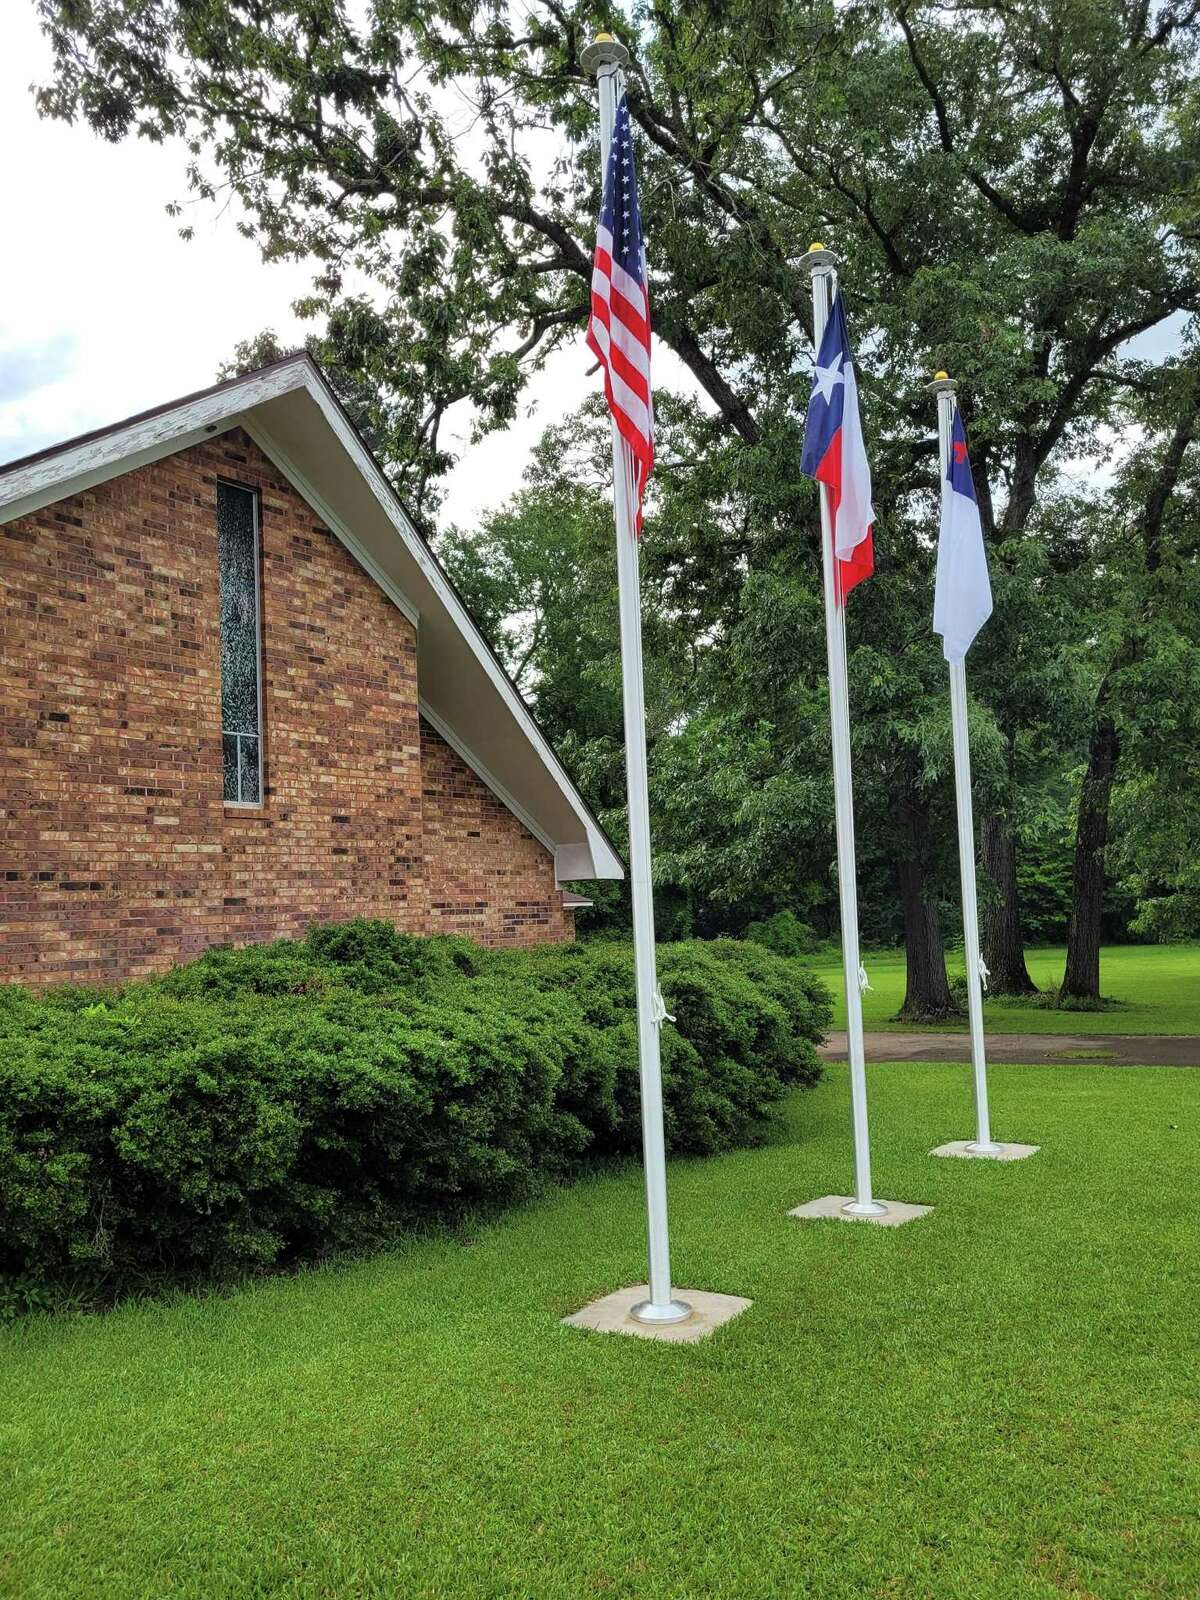 The U.S., Texas and Christian flags are now permanently on display for all who drive by to see.